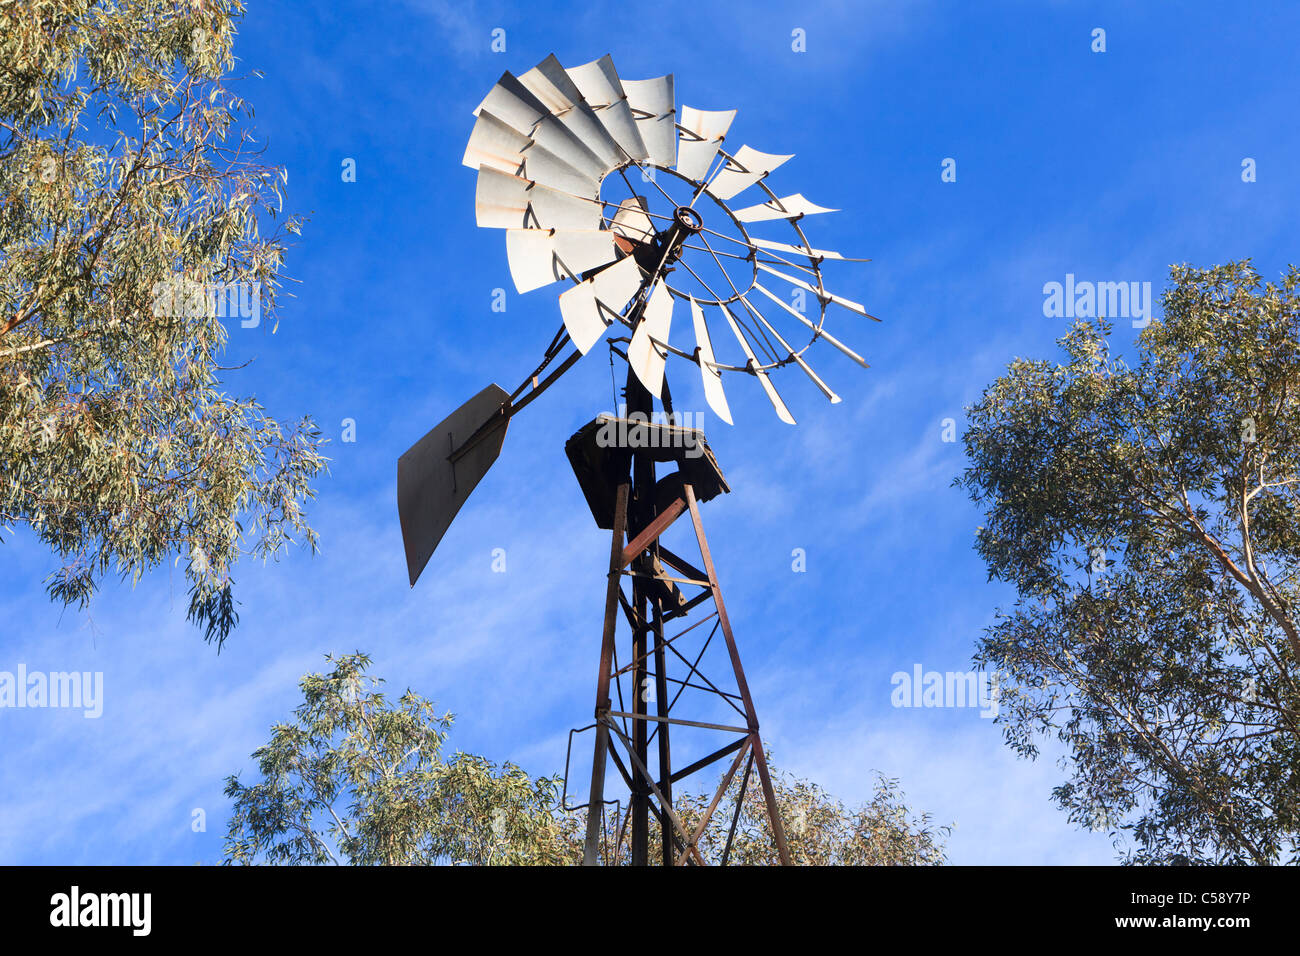 A water pump windmill surrounded by Eucalyptus trees typically found in of Australian farmland - Stock Image